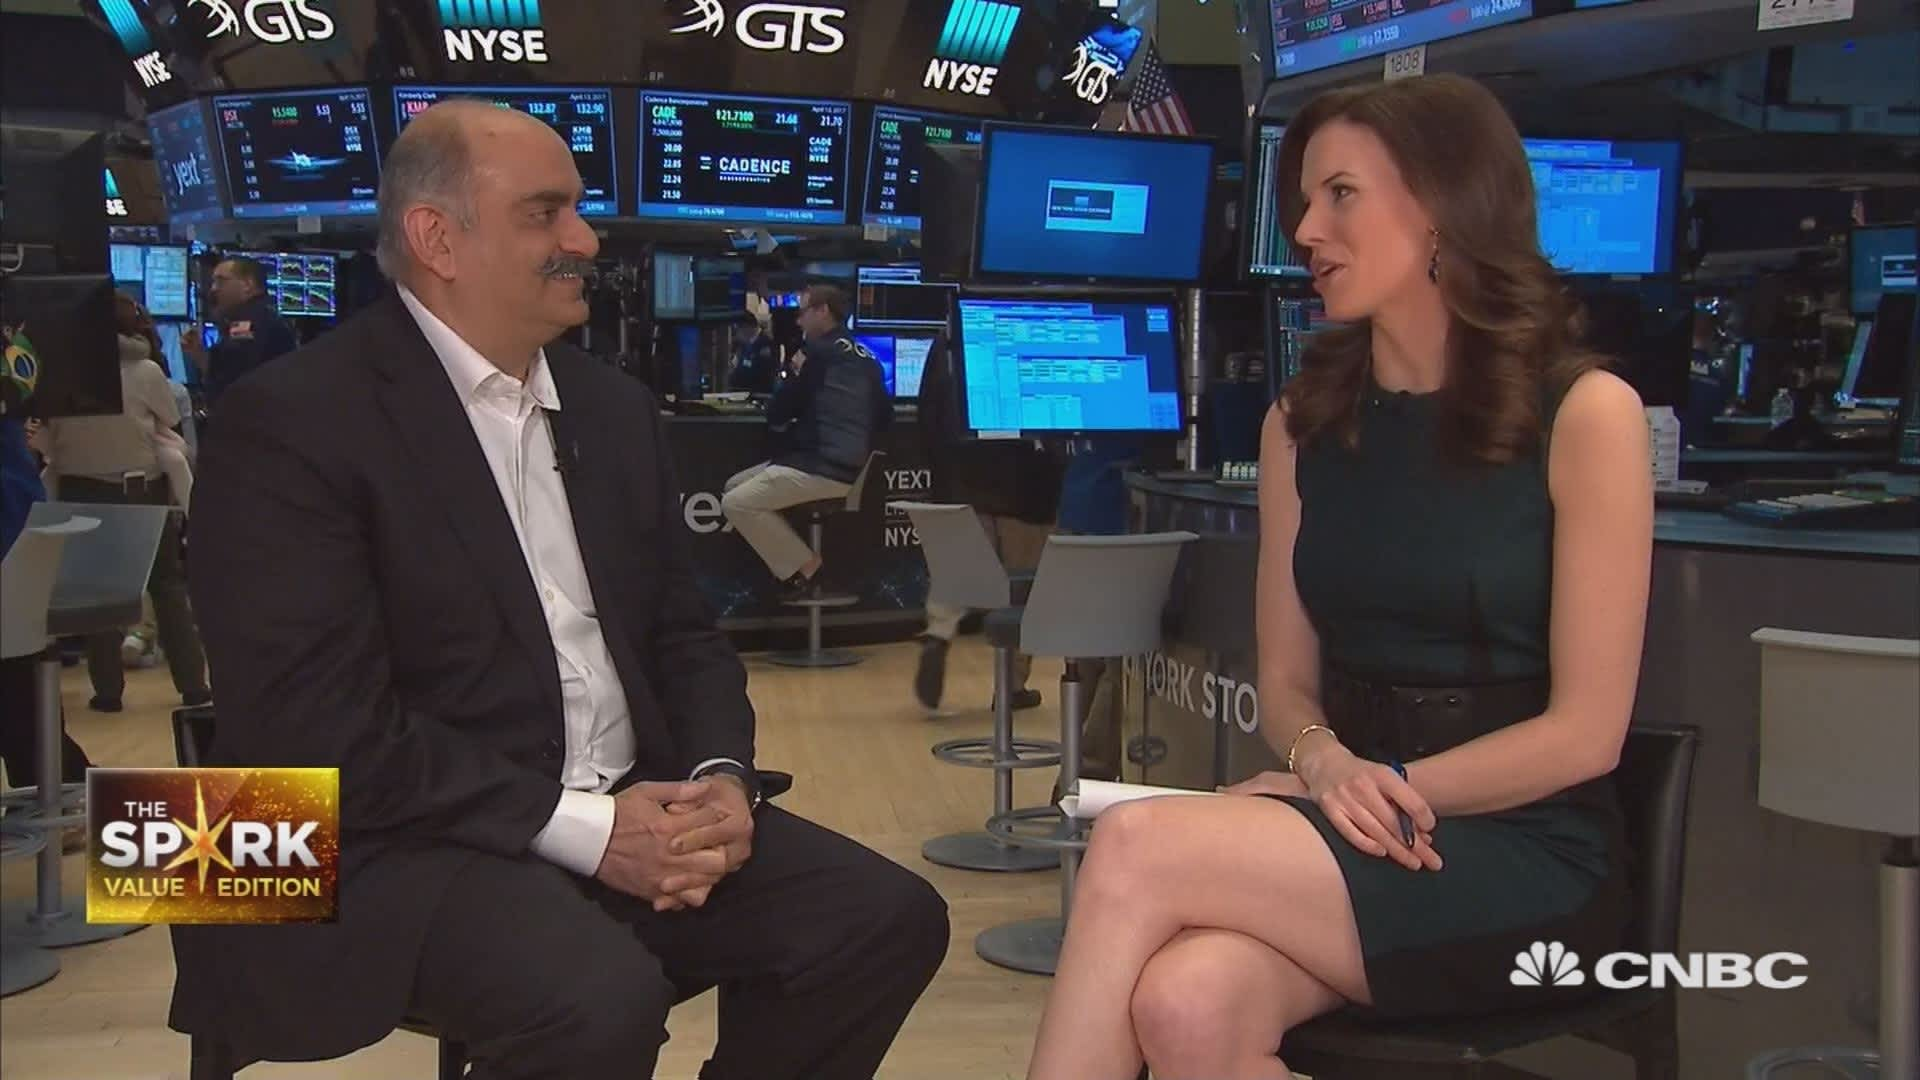 Mohnish Pabrai says buy stocks that 'just gush cash without debt' like Alphabet